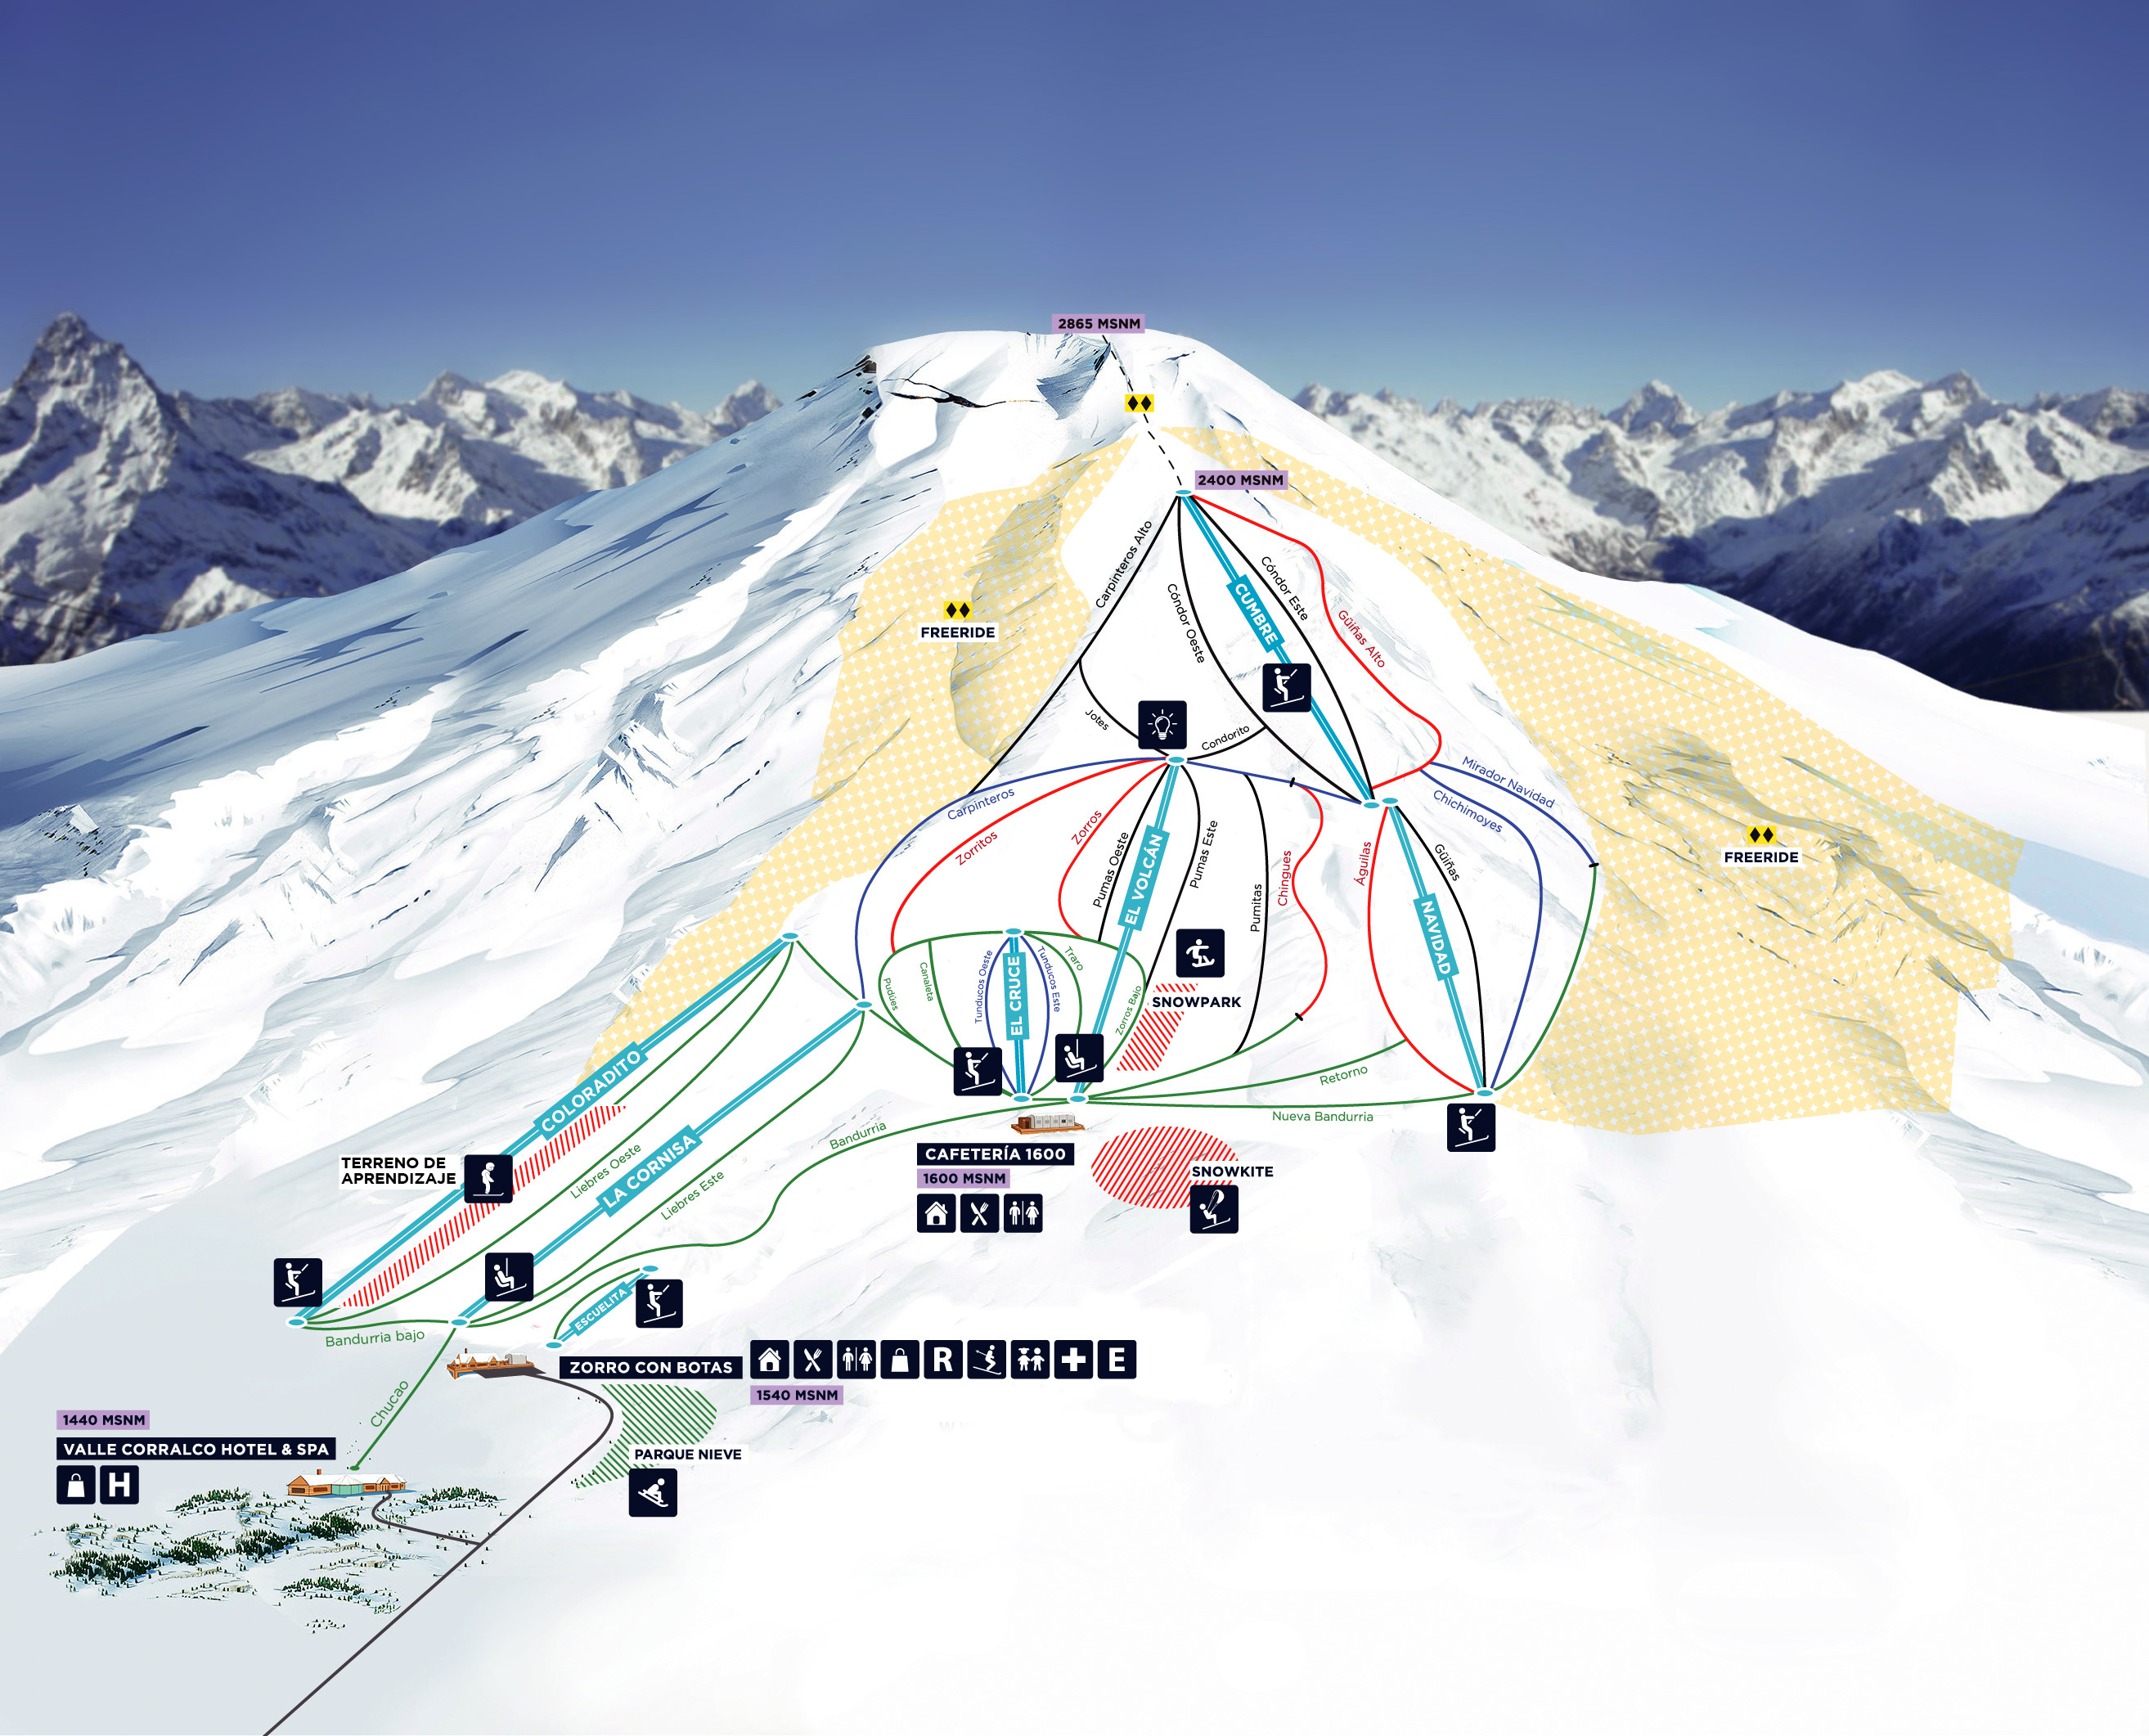 Corralco Mountain & Ski Resort Piste / Trail Map